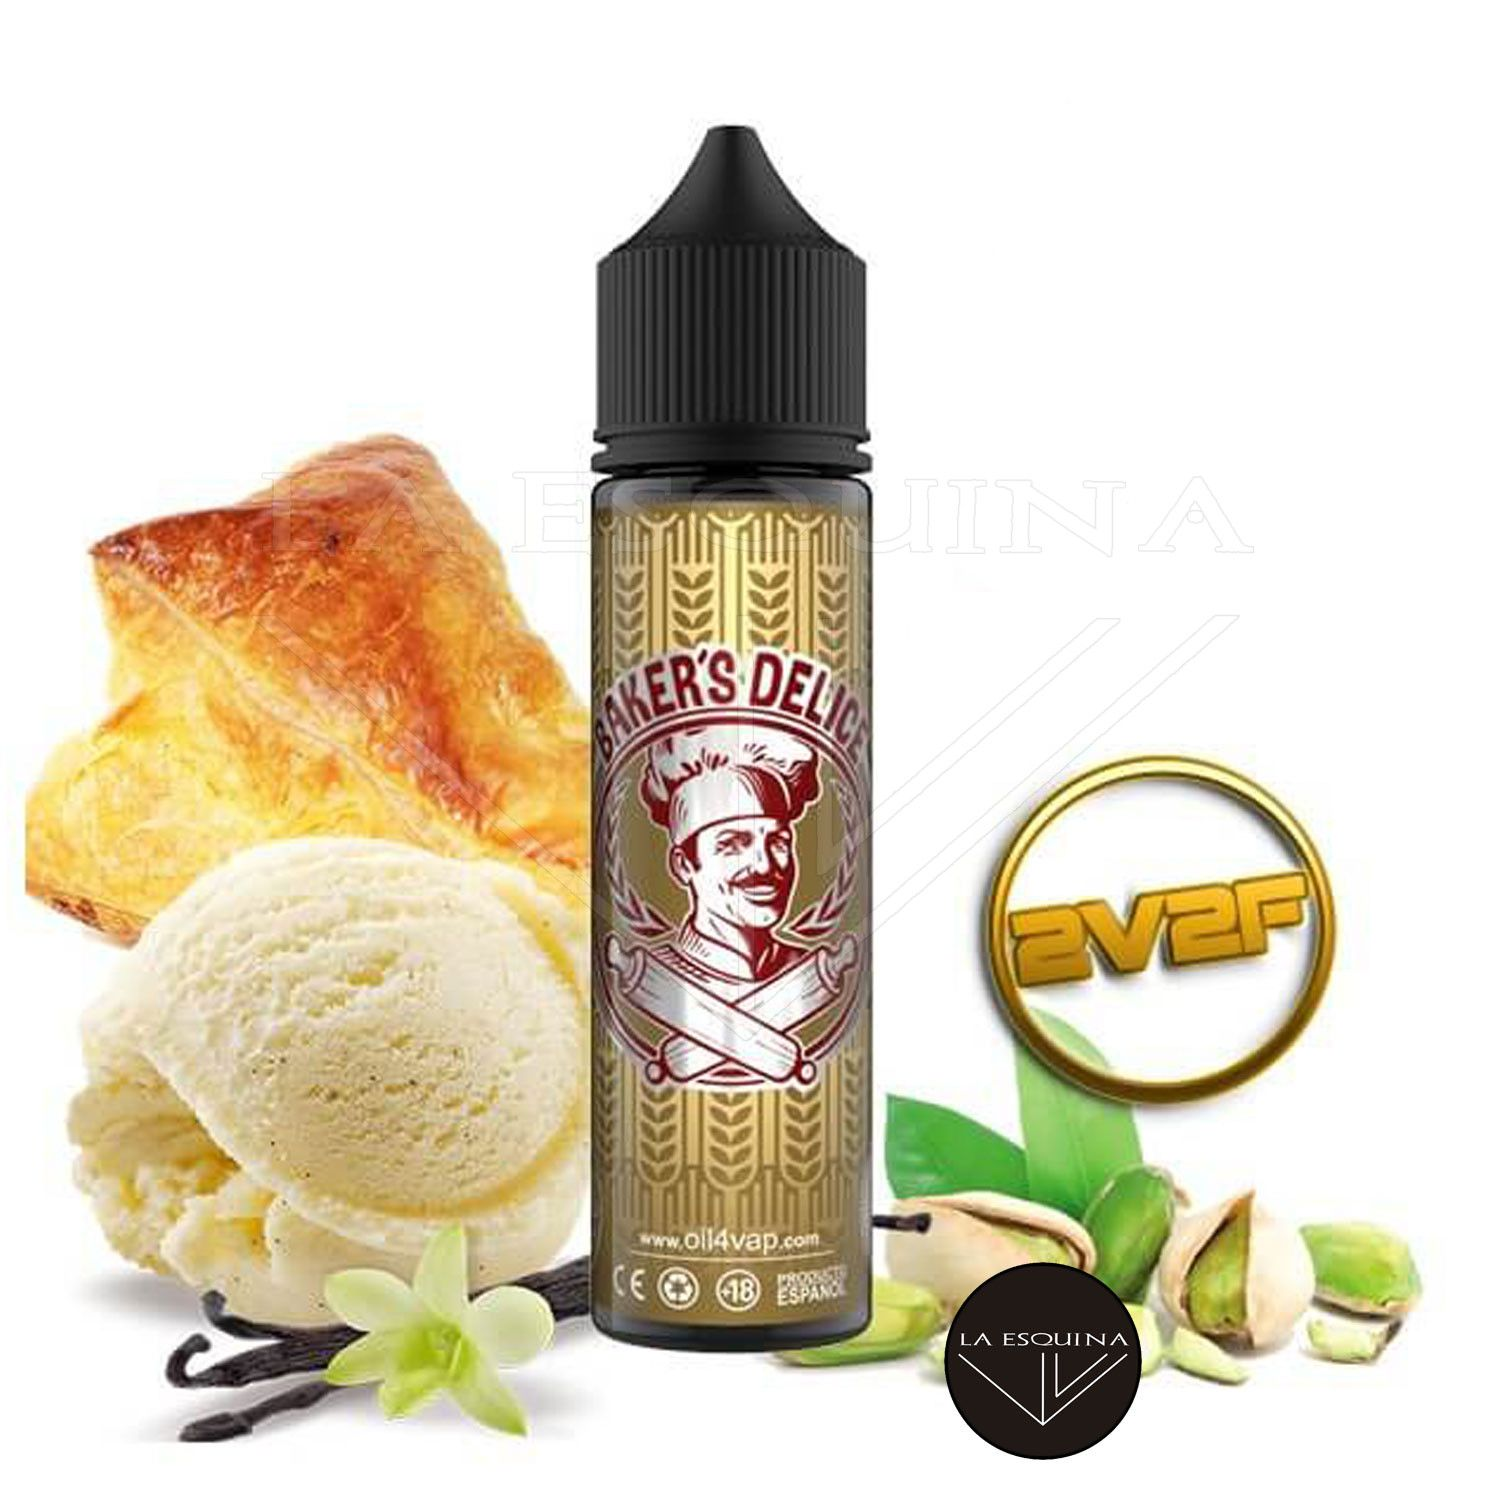 OIL4VAP 2V2F Baker's Delice 50ml